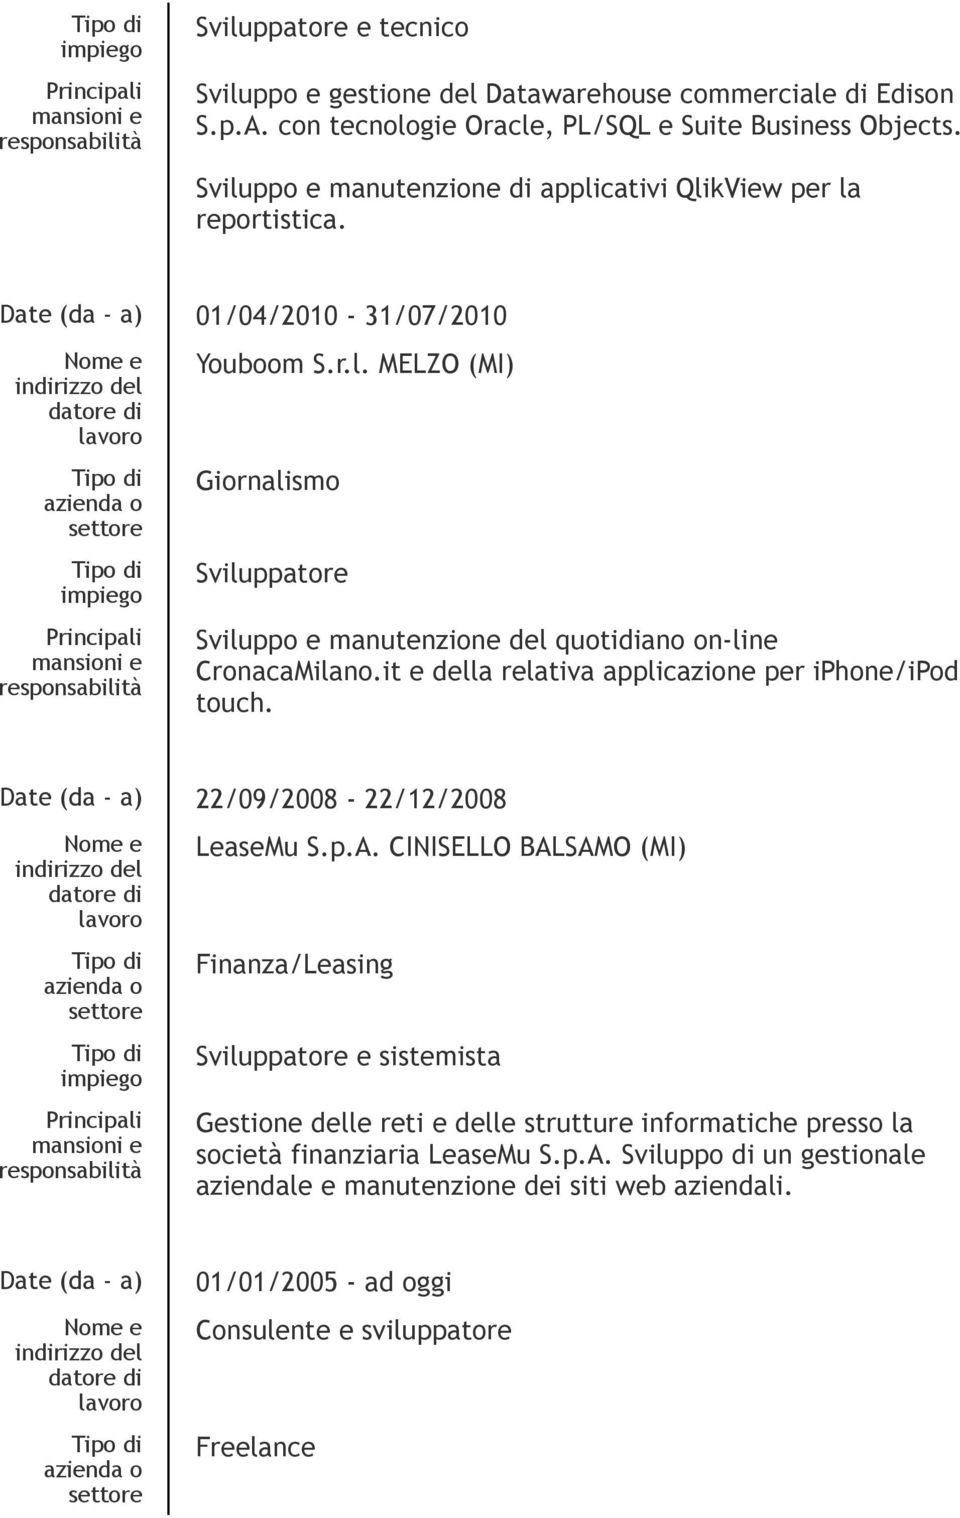 it e della relativa applicazione per iphone/ipod touch. Date (da - a) 22/09/2008-22/12/2008 LeaseMu S.p.A.